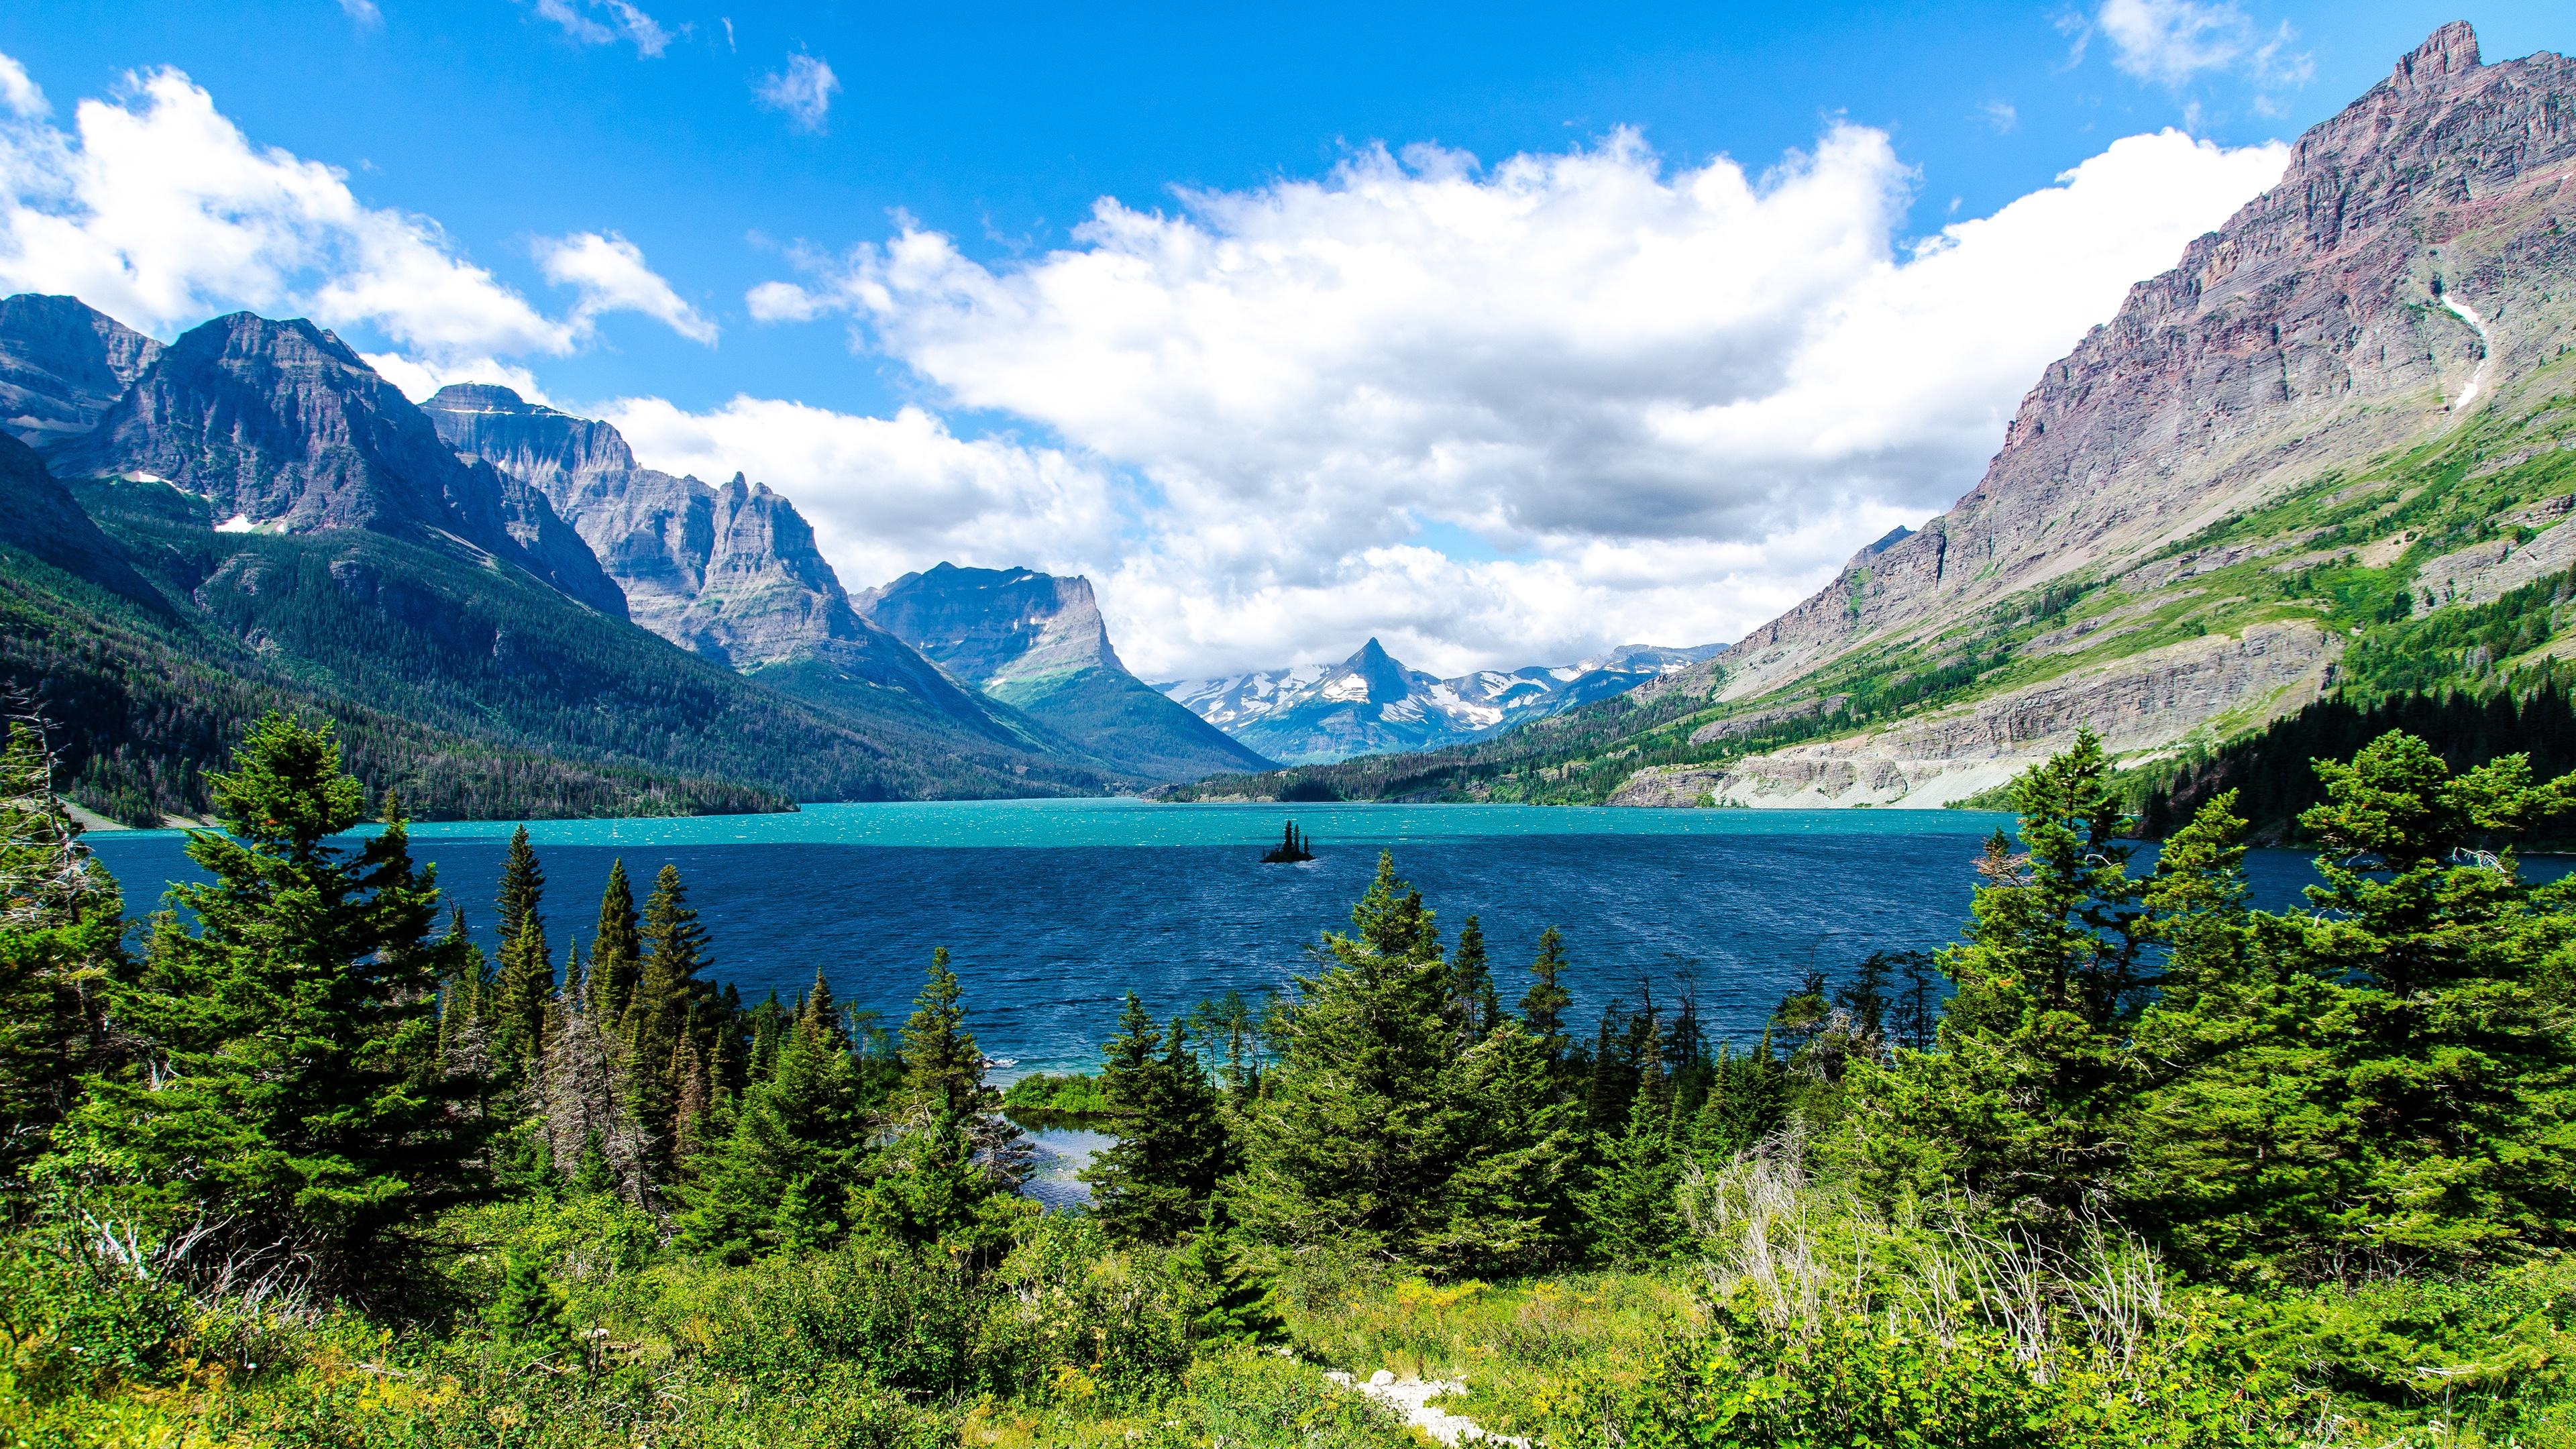 Saint Mary Lake Glacier National Park Wallpapers HD Wallpapers 3840x2160